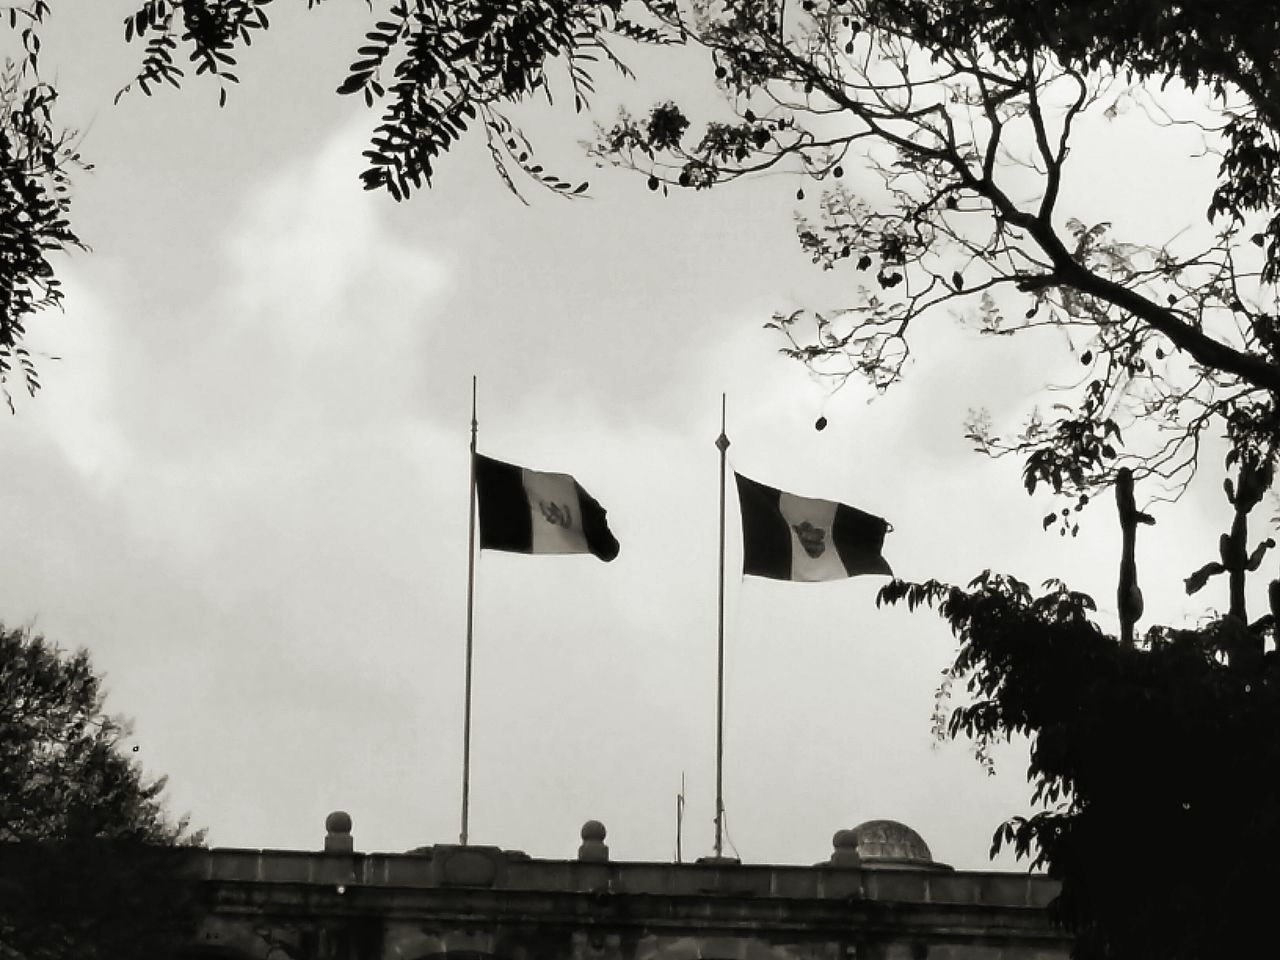 Two flags in the sky. Flag Patriotism Symbolism Sky National Icon Tree Cloud - Sky Outdoors Flag Pole Day Nature Shadows Guatemala Antigua Guatemala Guatemala Flag Municipalidad Building Park Black And White Black And White Photography